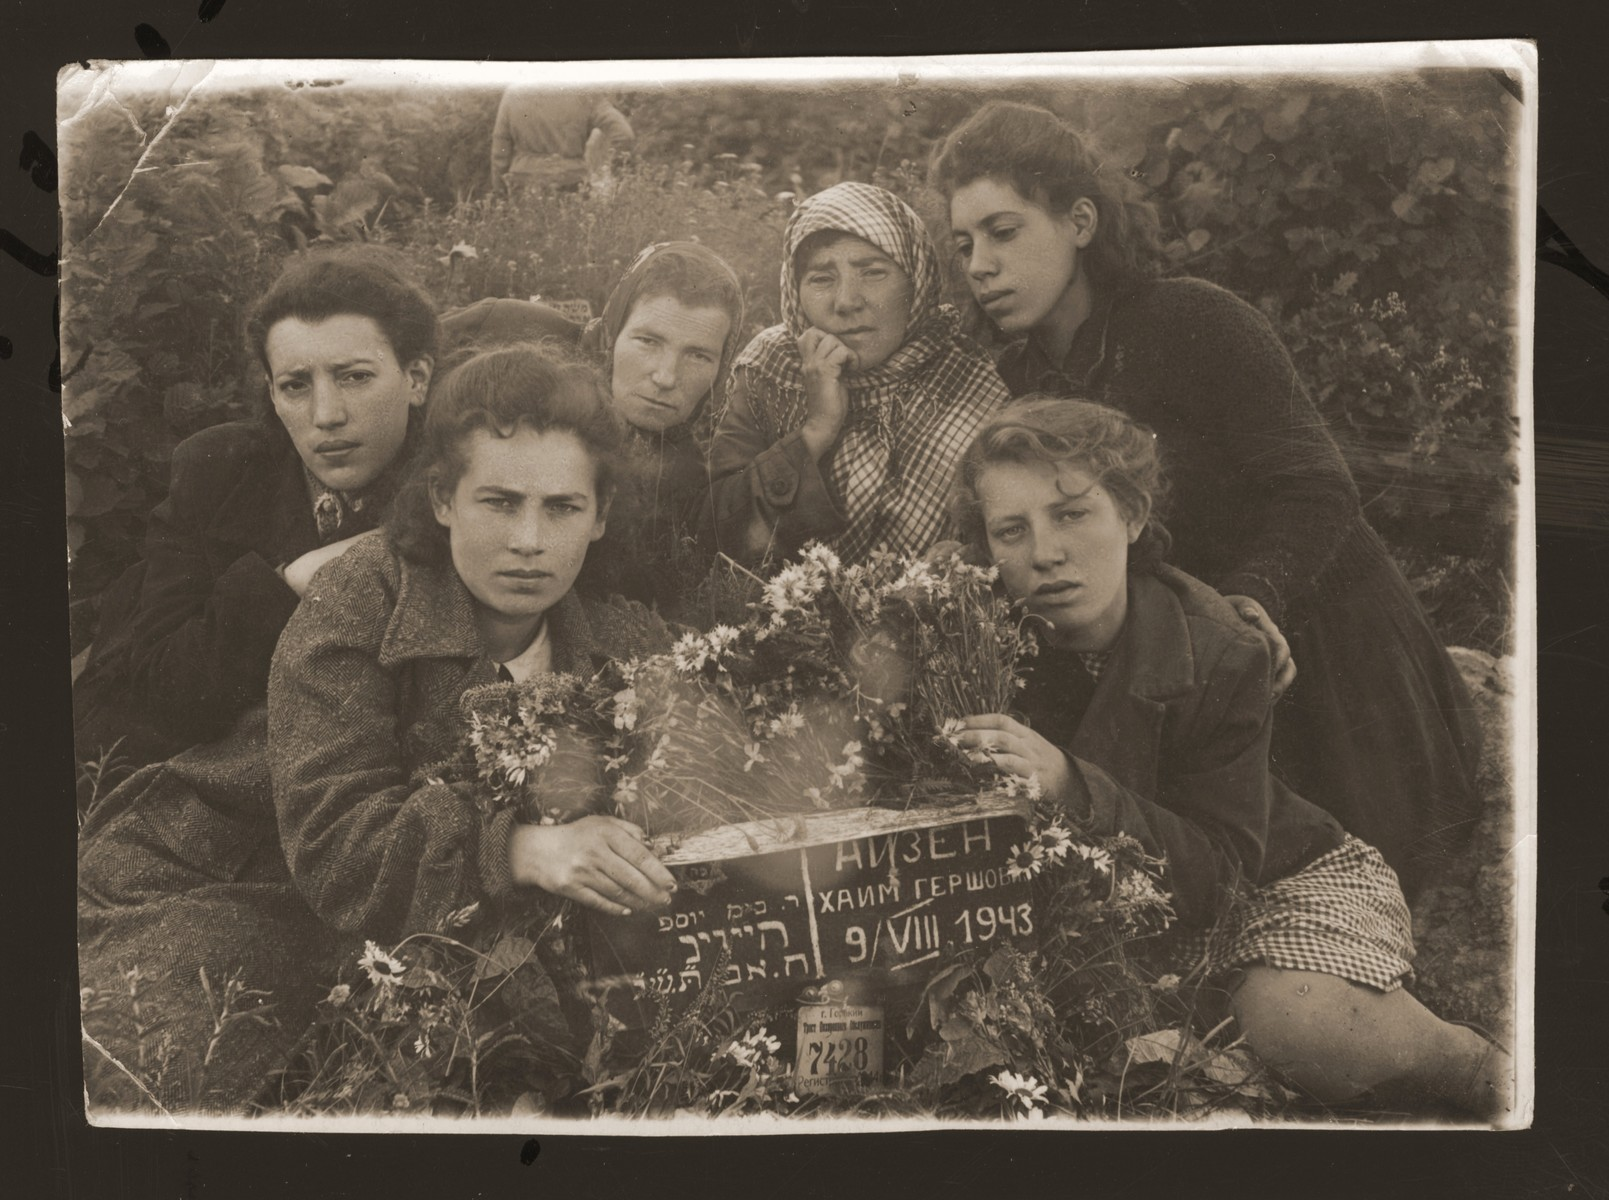 Necha Ajzen poses with her daughters at her husband's grave in Gorky.  Pictured clockwise from the lower left are: Chaika, Mania, unknow, Necha, Malka and Ethel Ajzen.